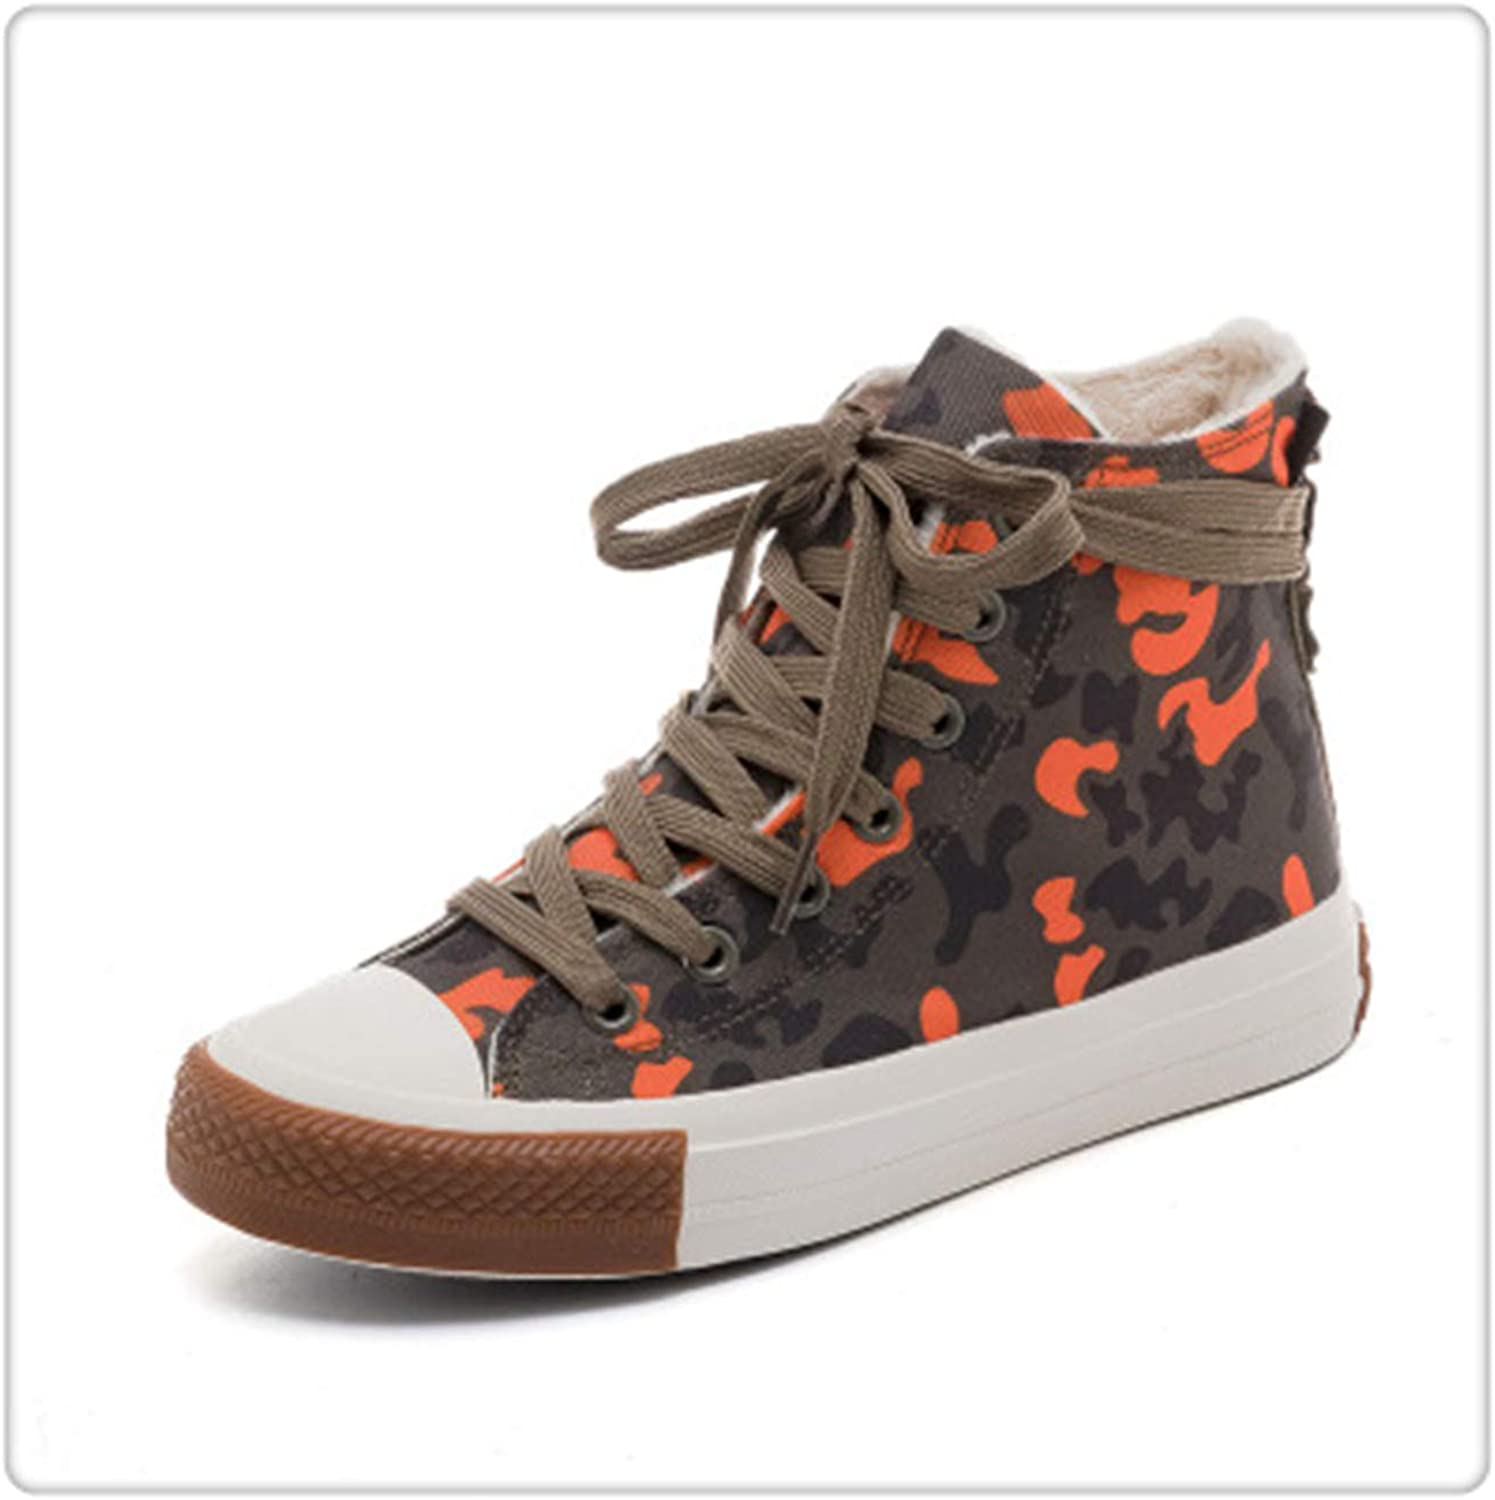 GLOPY& 2018 New Women Sneakers Winter Fur Lined Girls Canvas shoes Students Casual shoes Camouflage Lace Up Flat Heel High Tops 35-40 Red 39